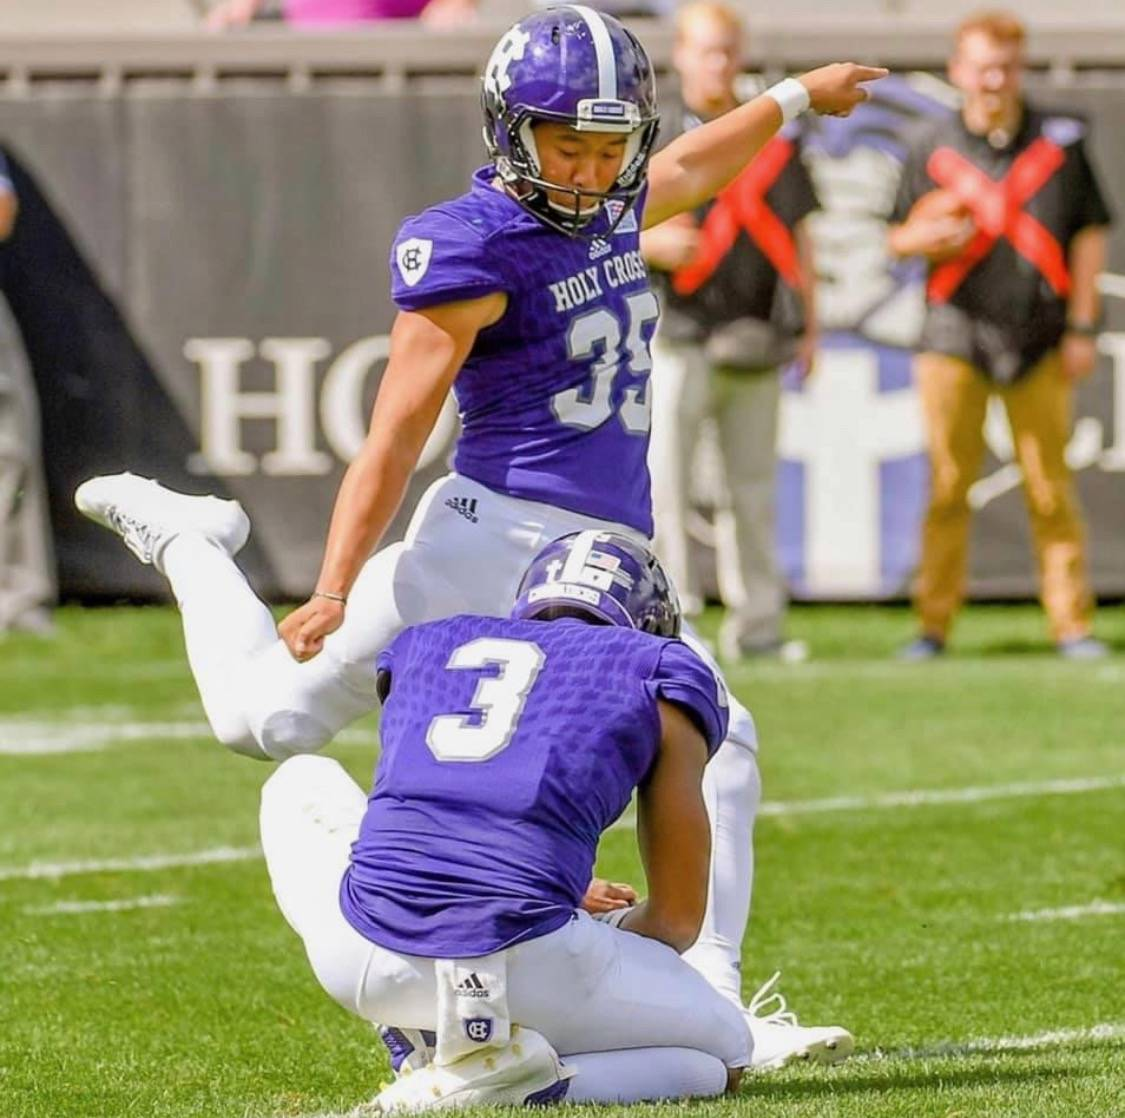 Former Bishop Gorman High kicker Derek Ng kicked a Holy Cross record 51-yard field goal in the ...